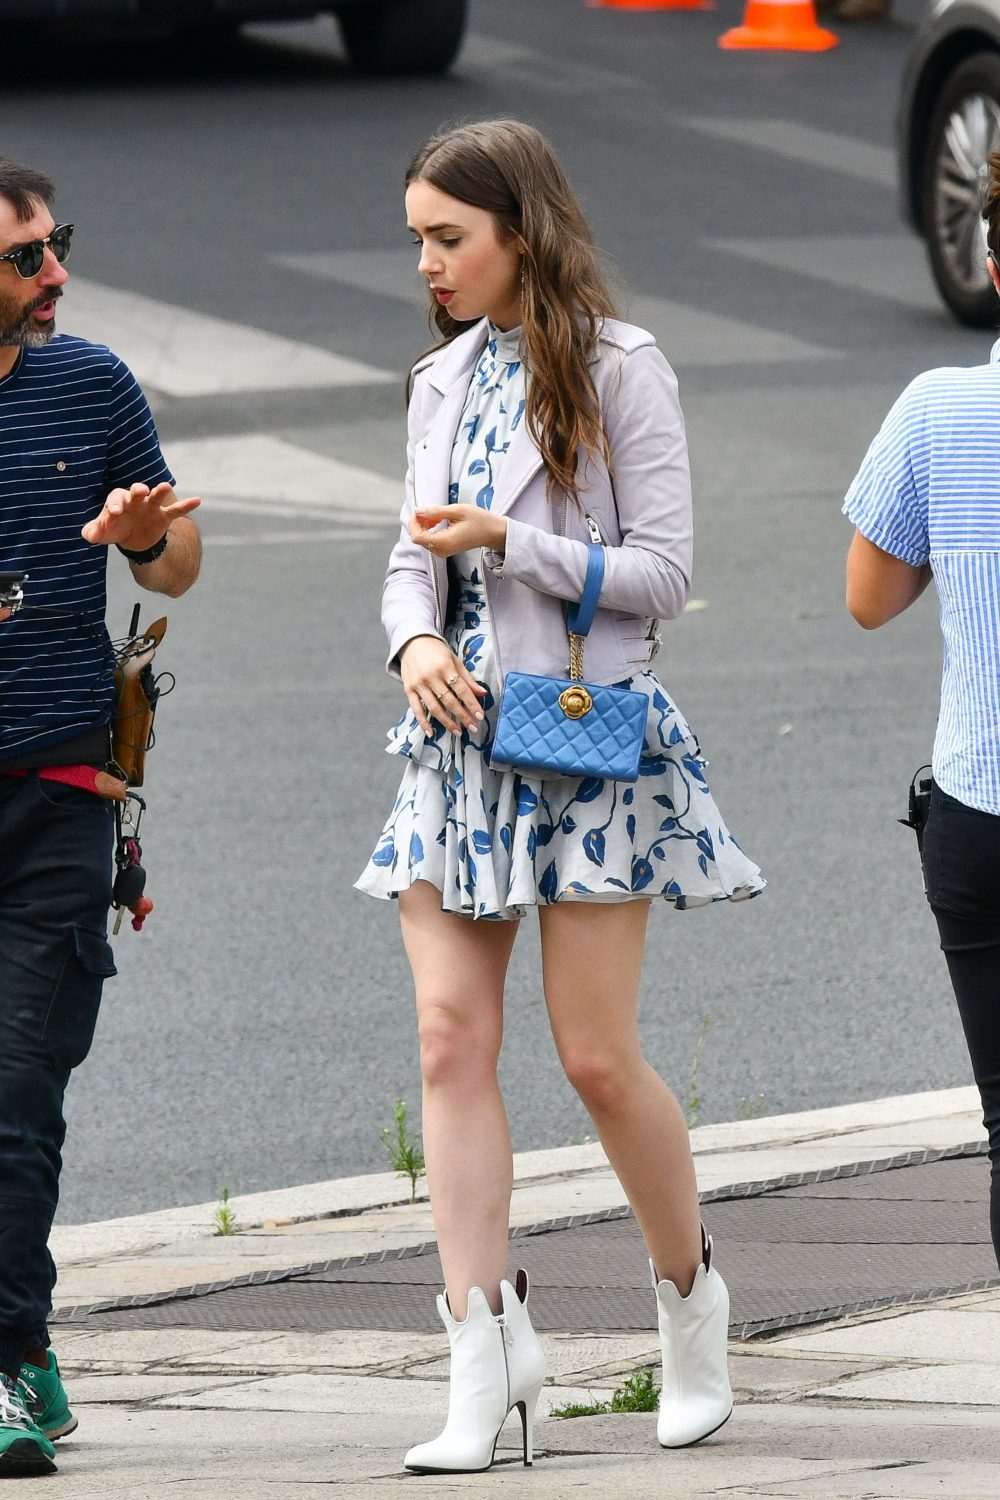 Lily Collins during the filming of Emily in Paris